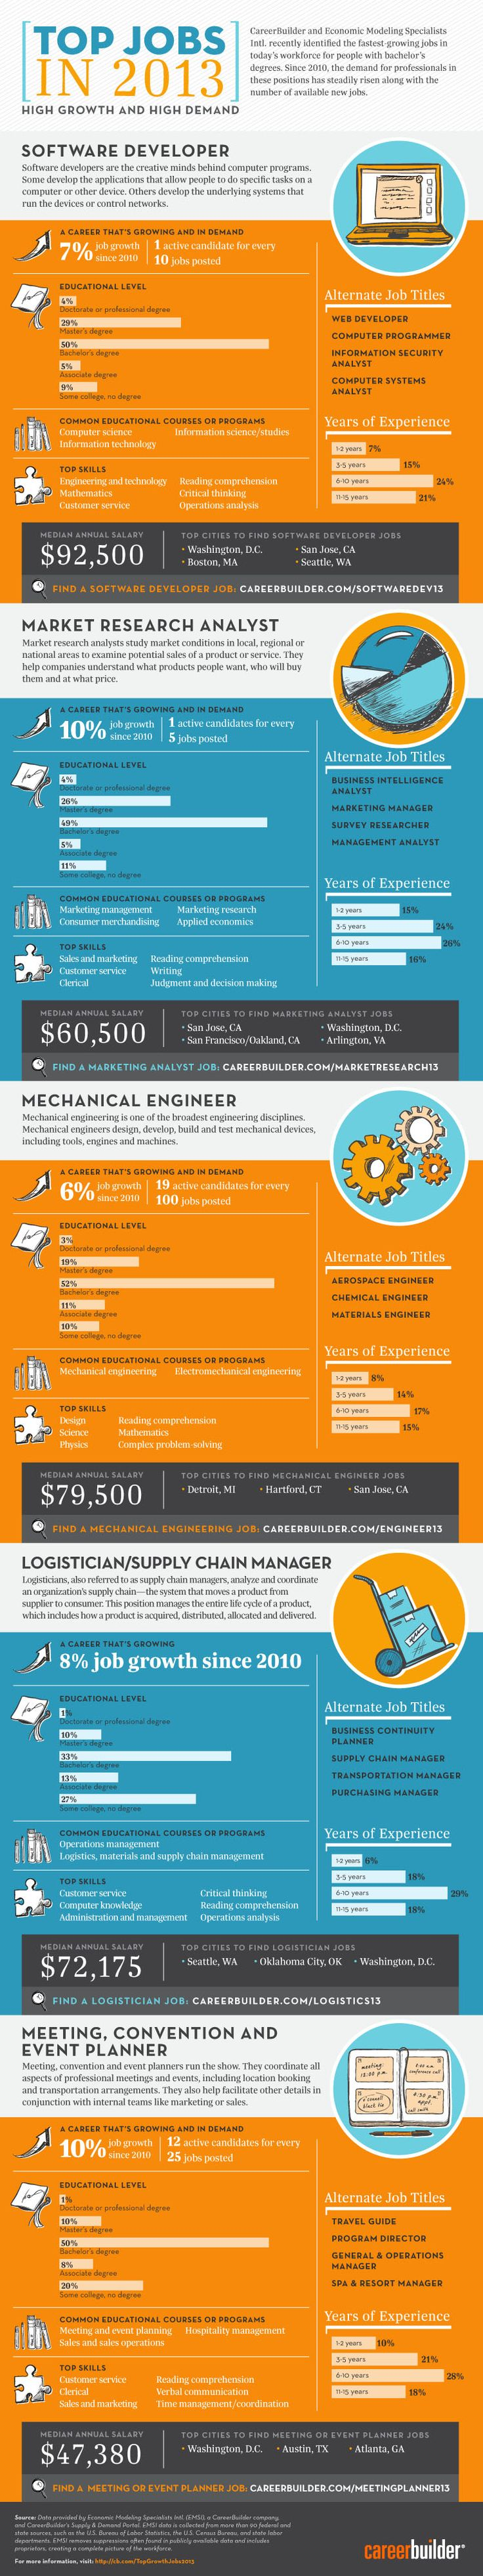 5 Most Growing and High Demand #Jobs In #2013 [#infographic]